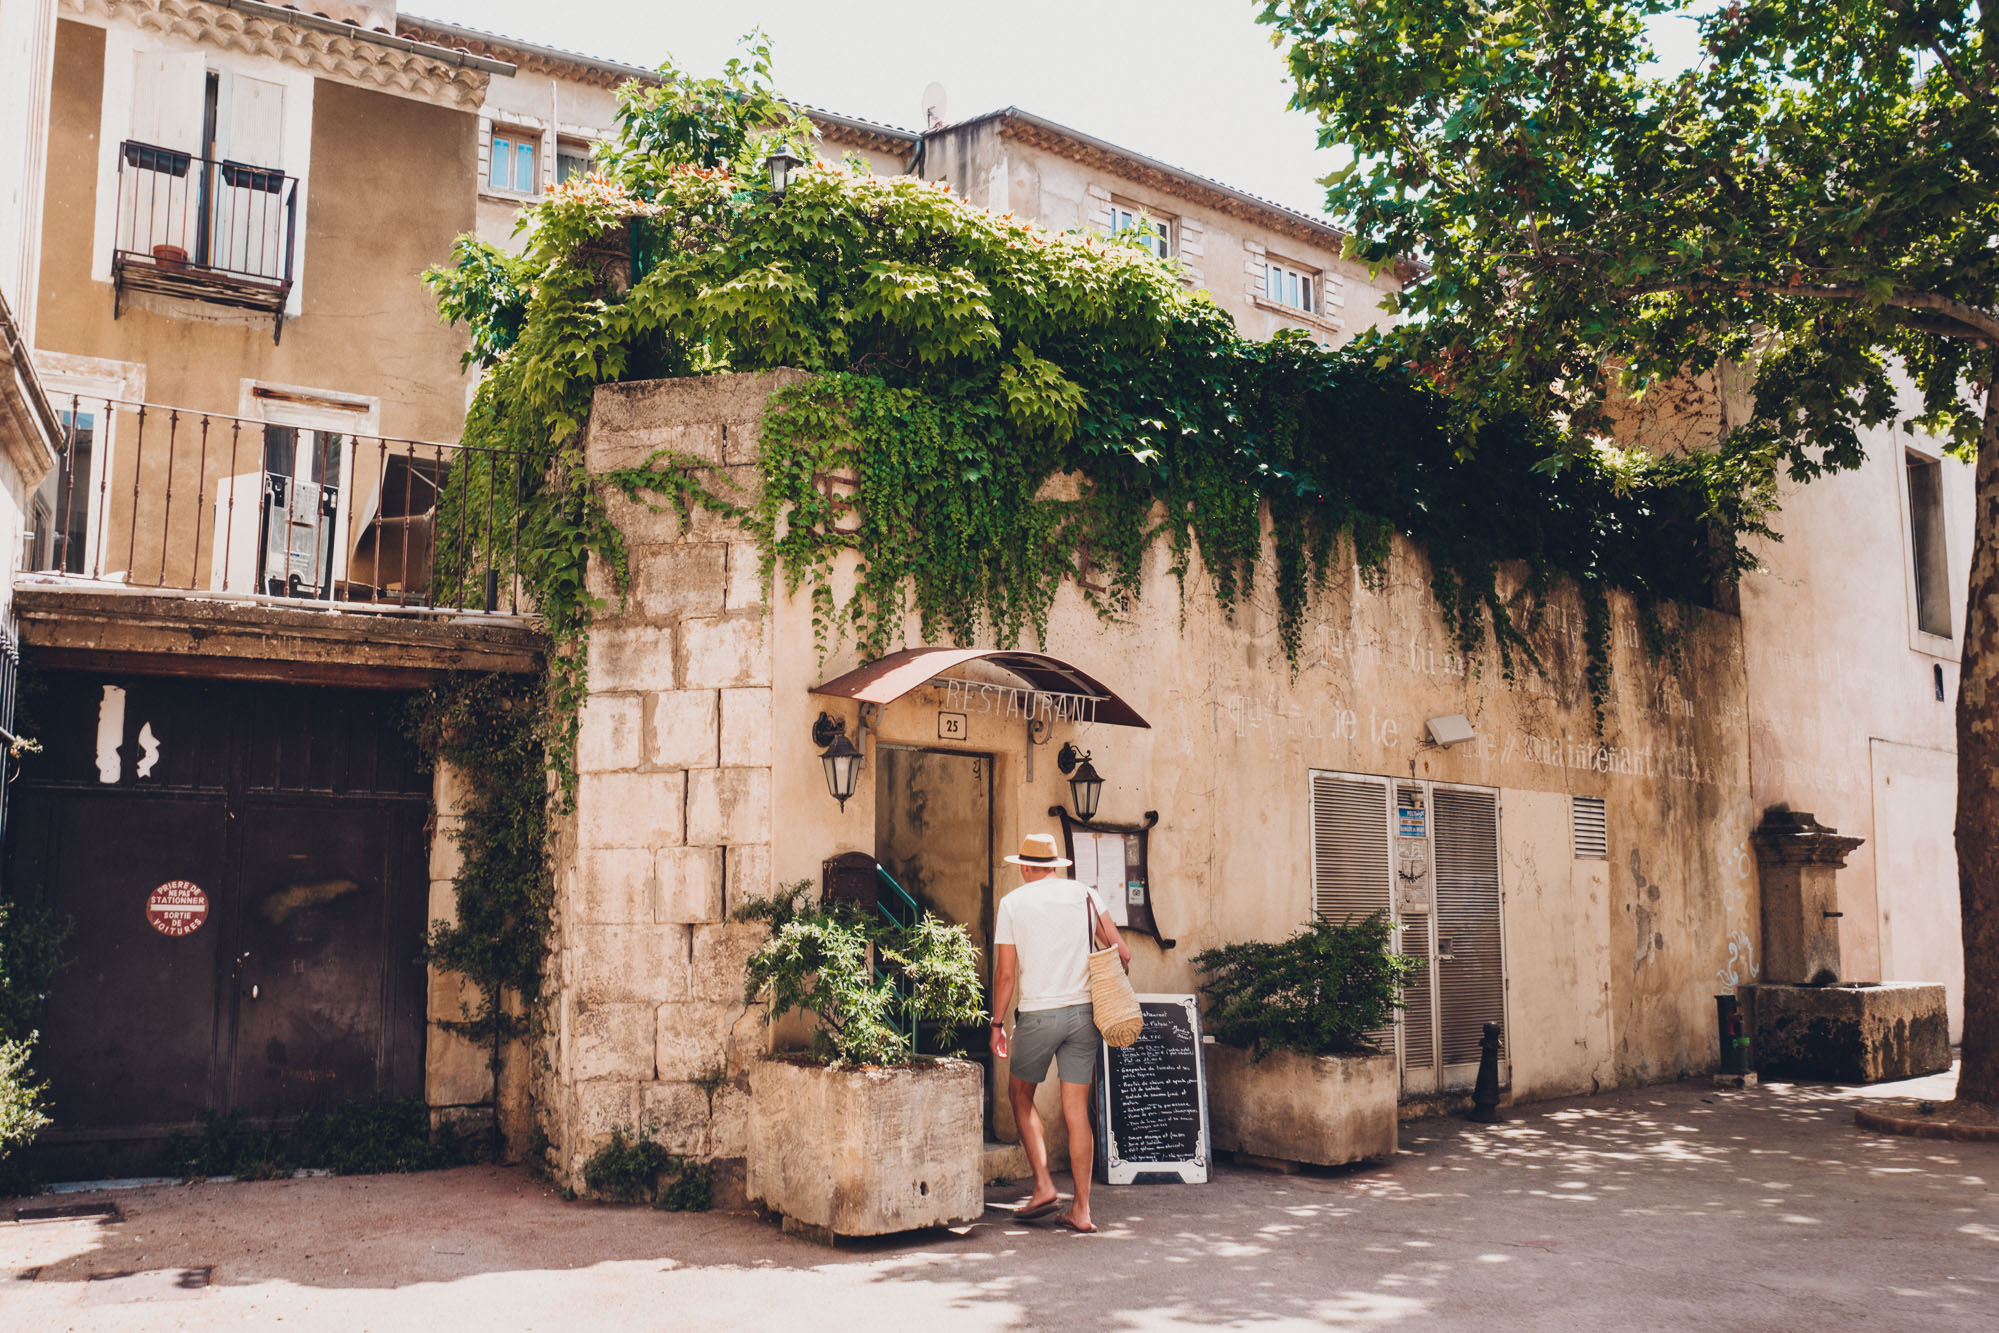 Apt market restaurant in Provence, South of France